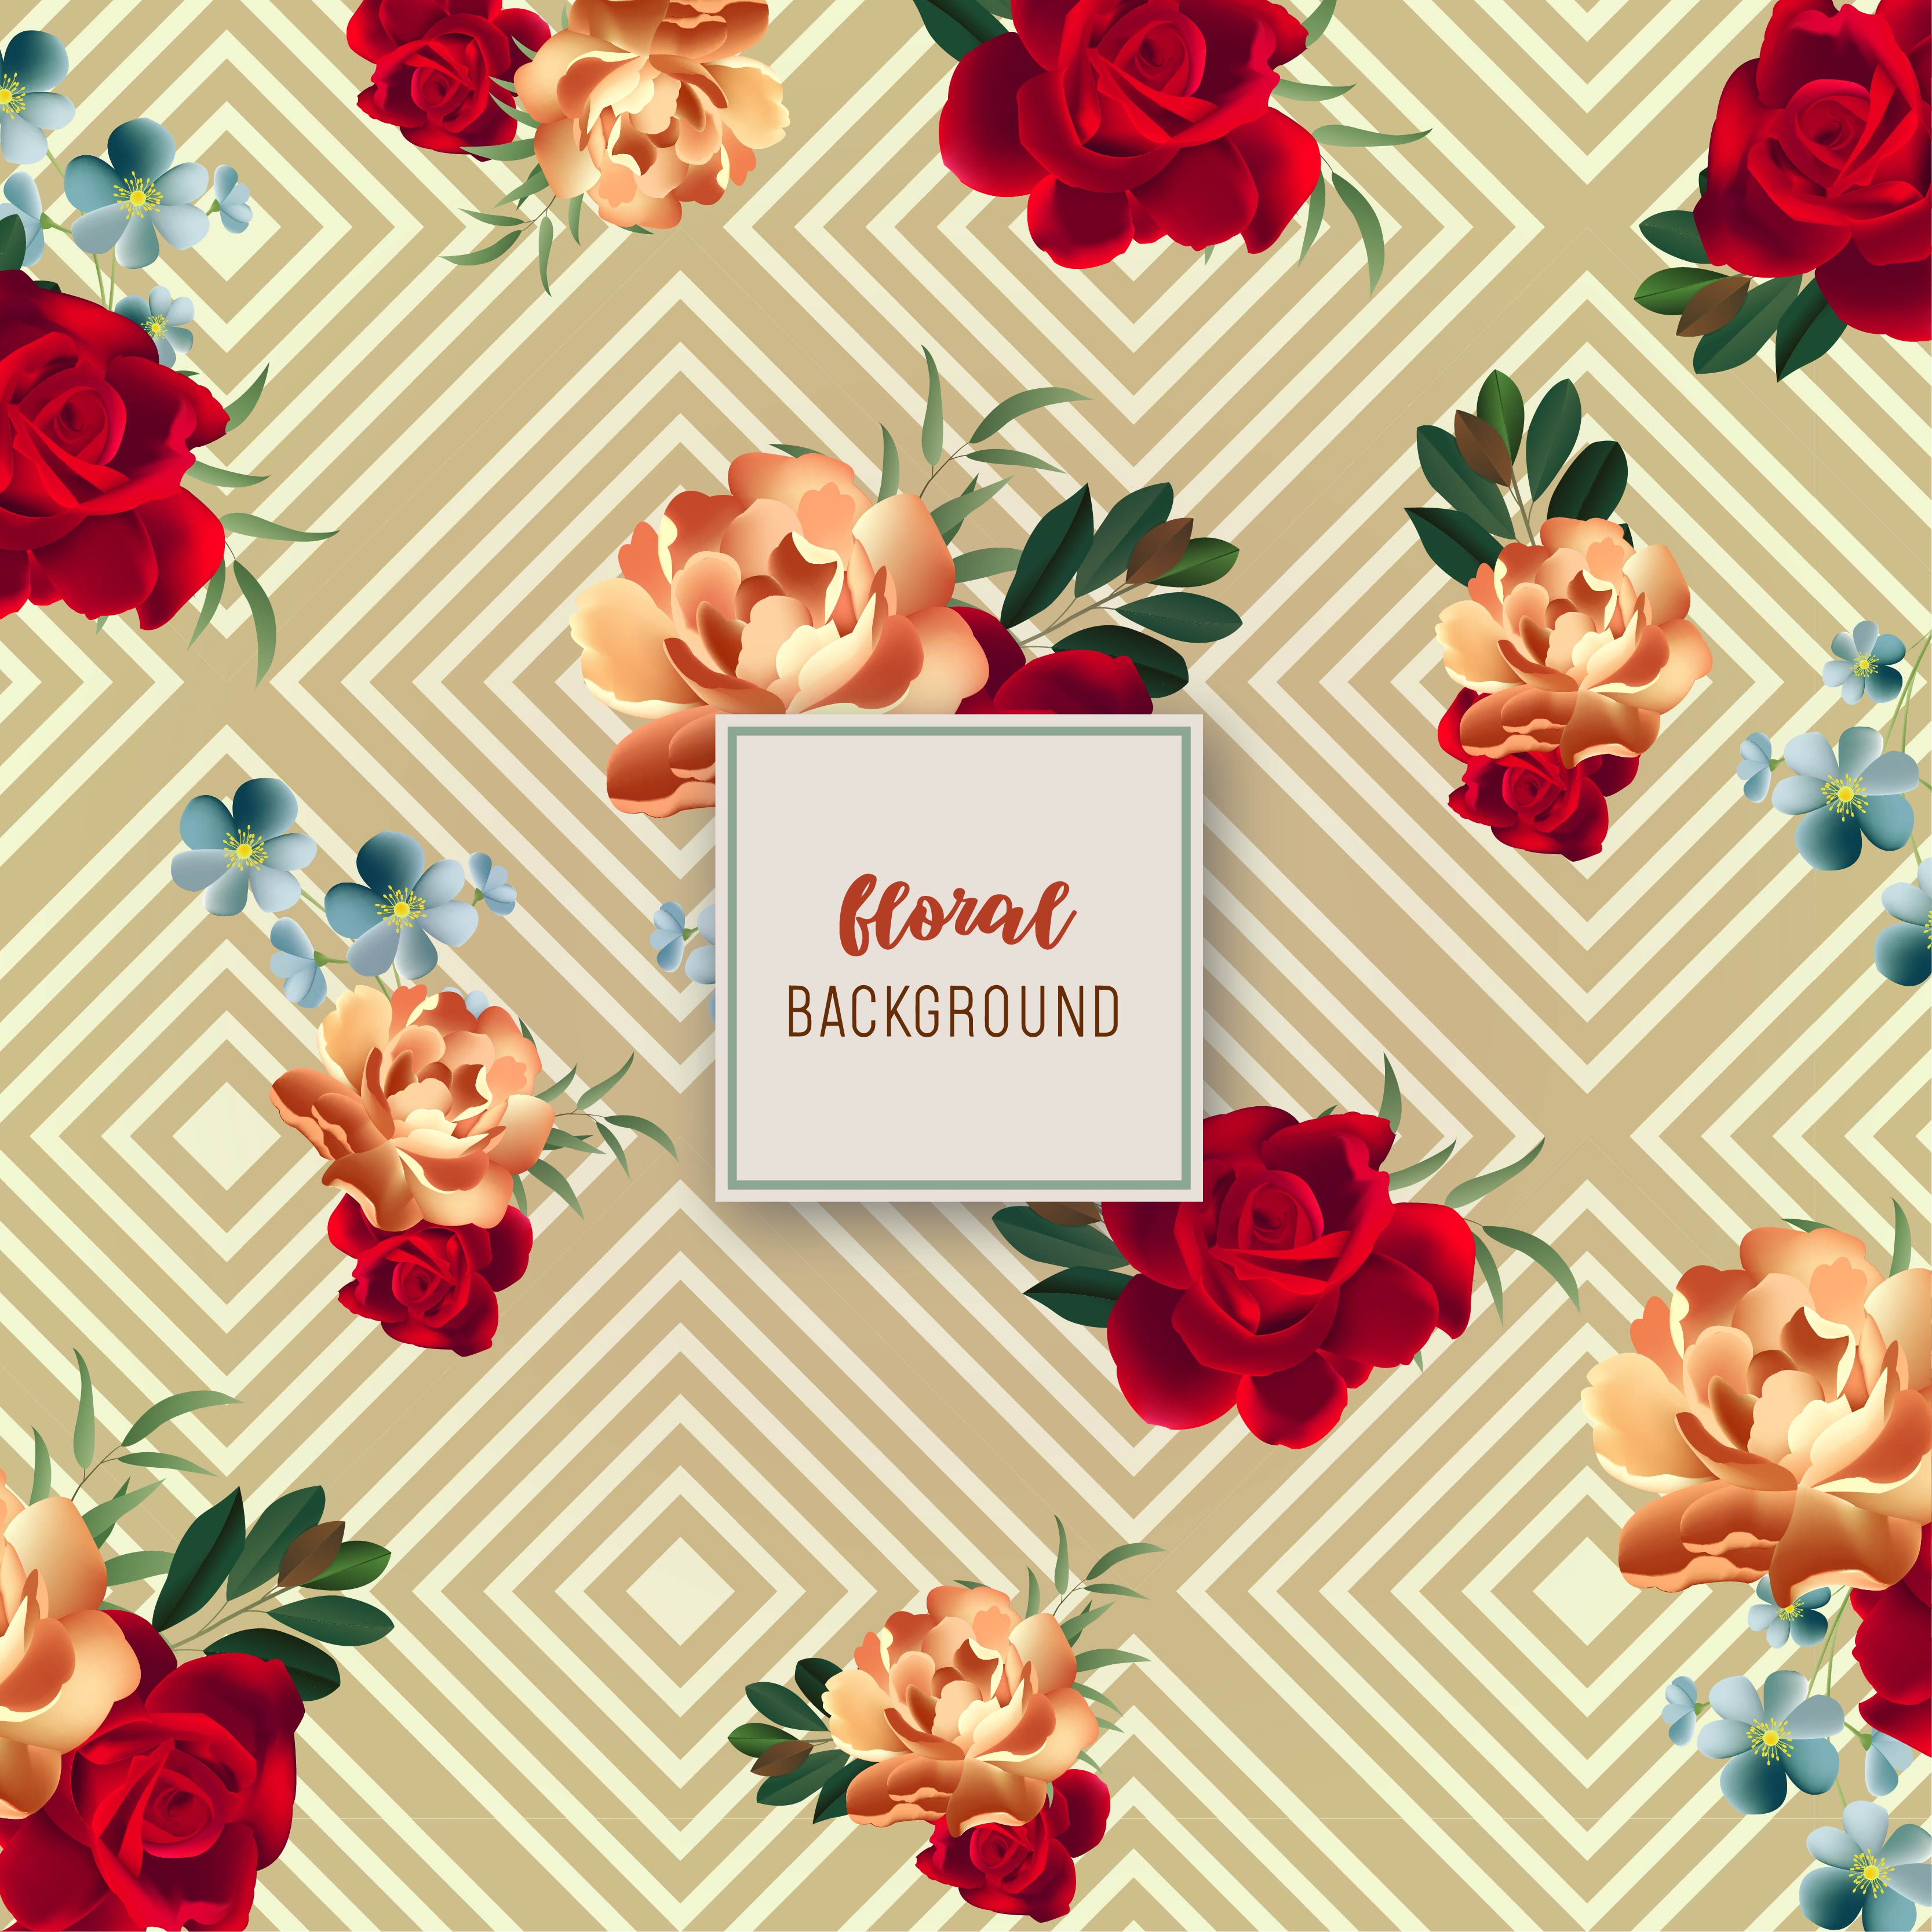 Vintage Floral Background Design Download Free Vectors Clipart